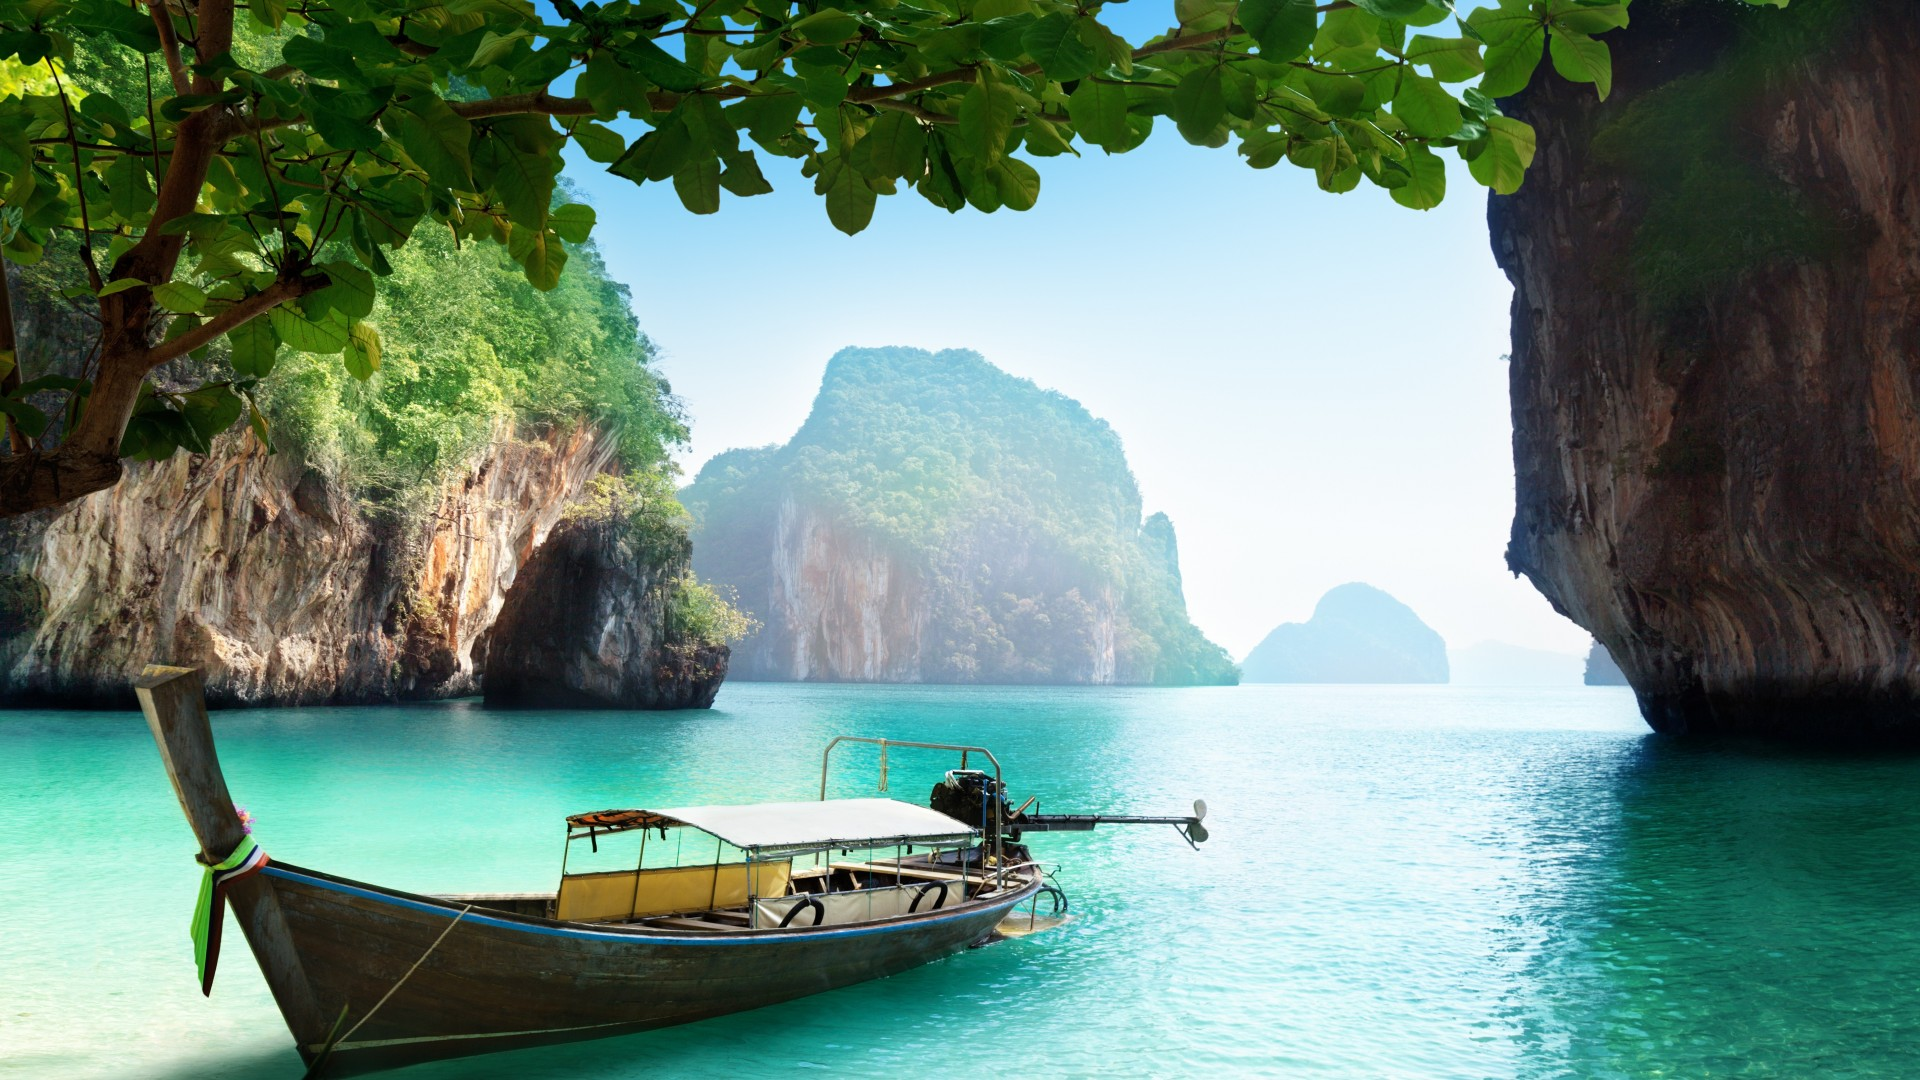 thailand wallpapers best wallpapers On thai wallpaper gallery